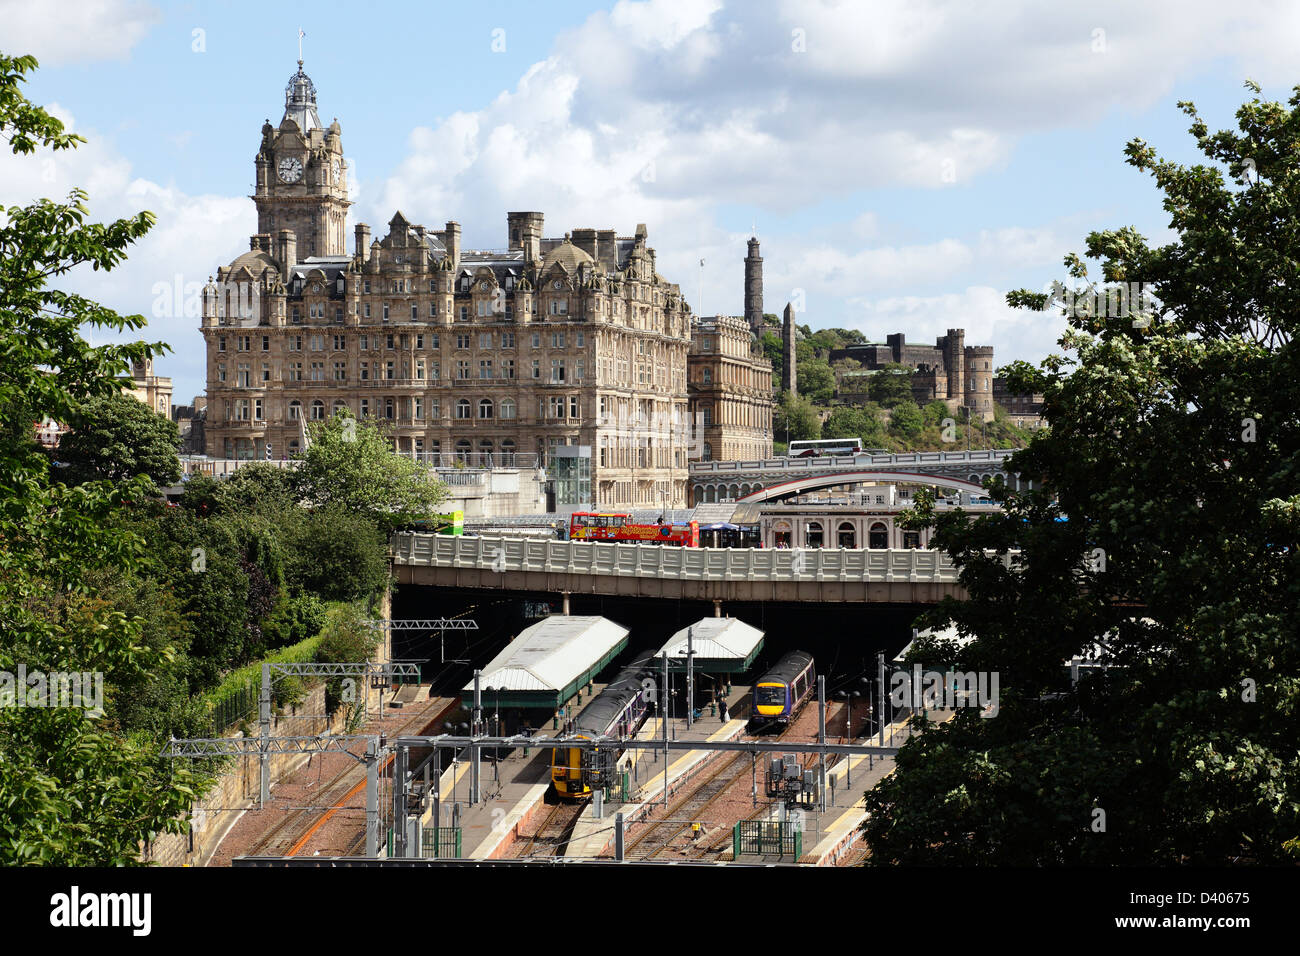 View looking East over Waverley Station and Bridge towards the Balmoral Hotel in Edinburgh city centre, Scotland, - Stock Image